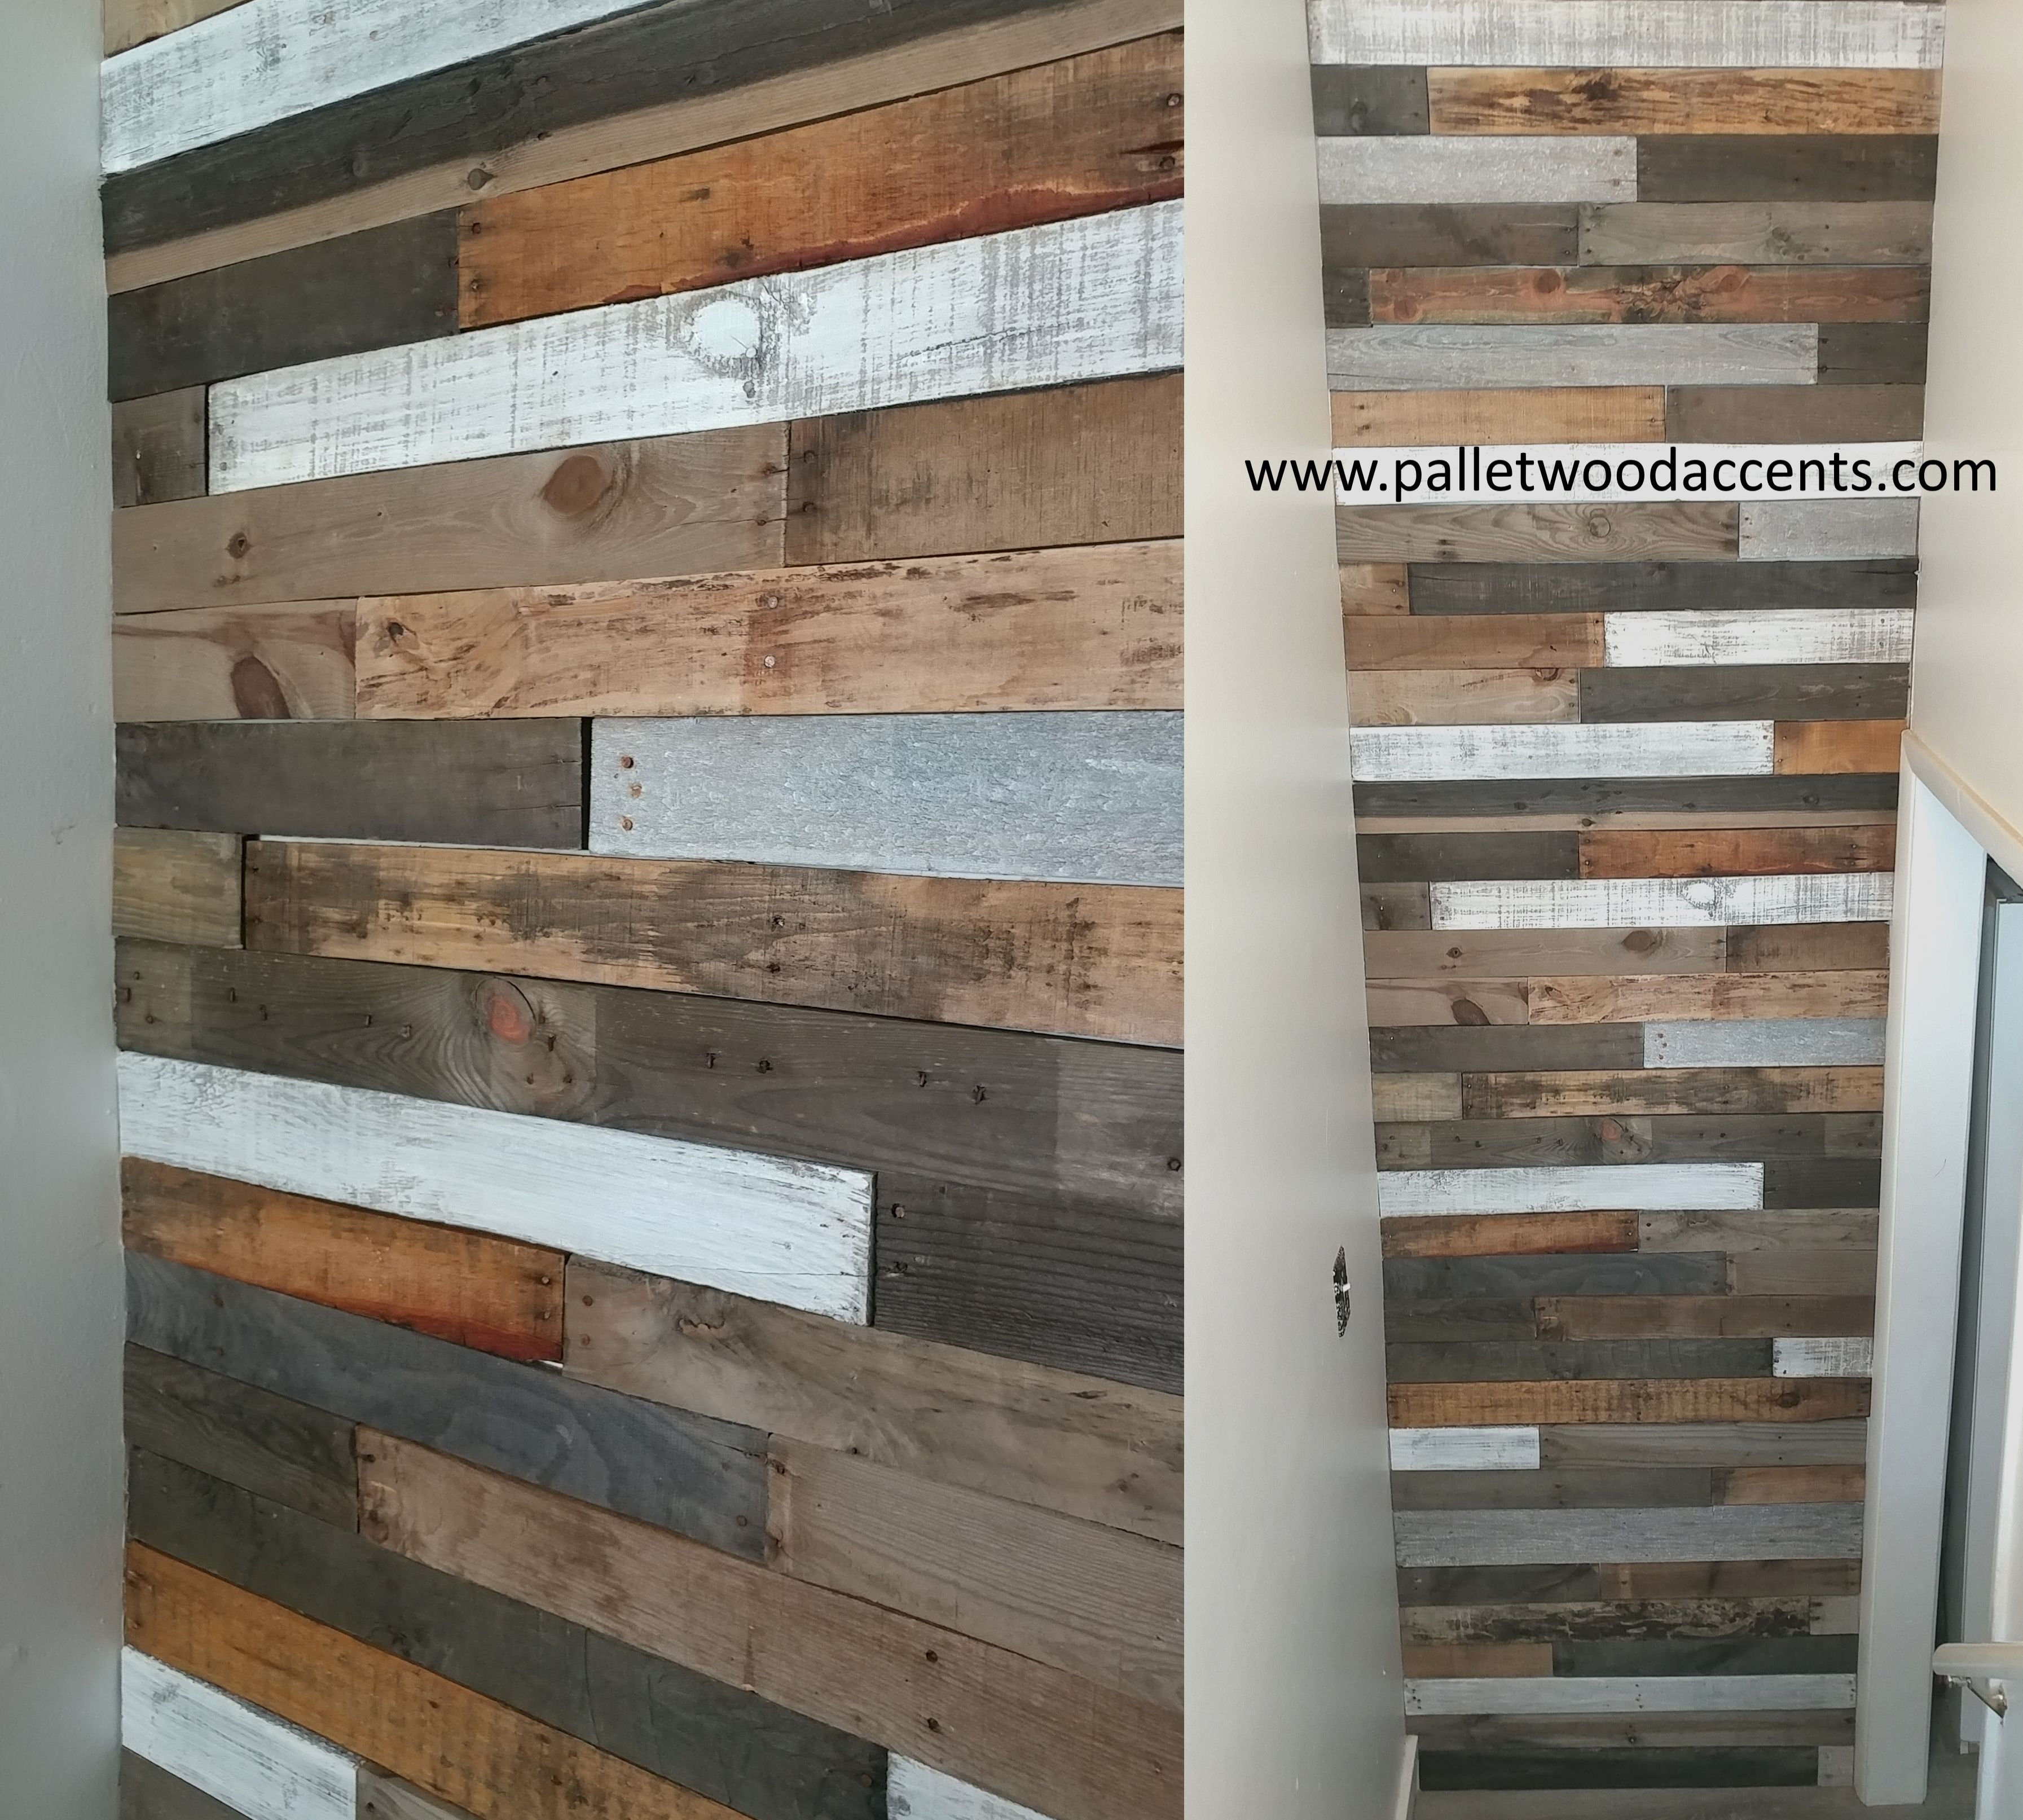 Diagonal Wood Pallet Accent Wall: Pin By SLC Pallet Walls On Pallet Wood Accent Walls